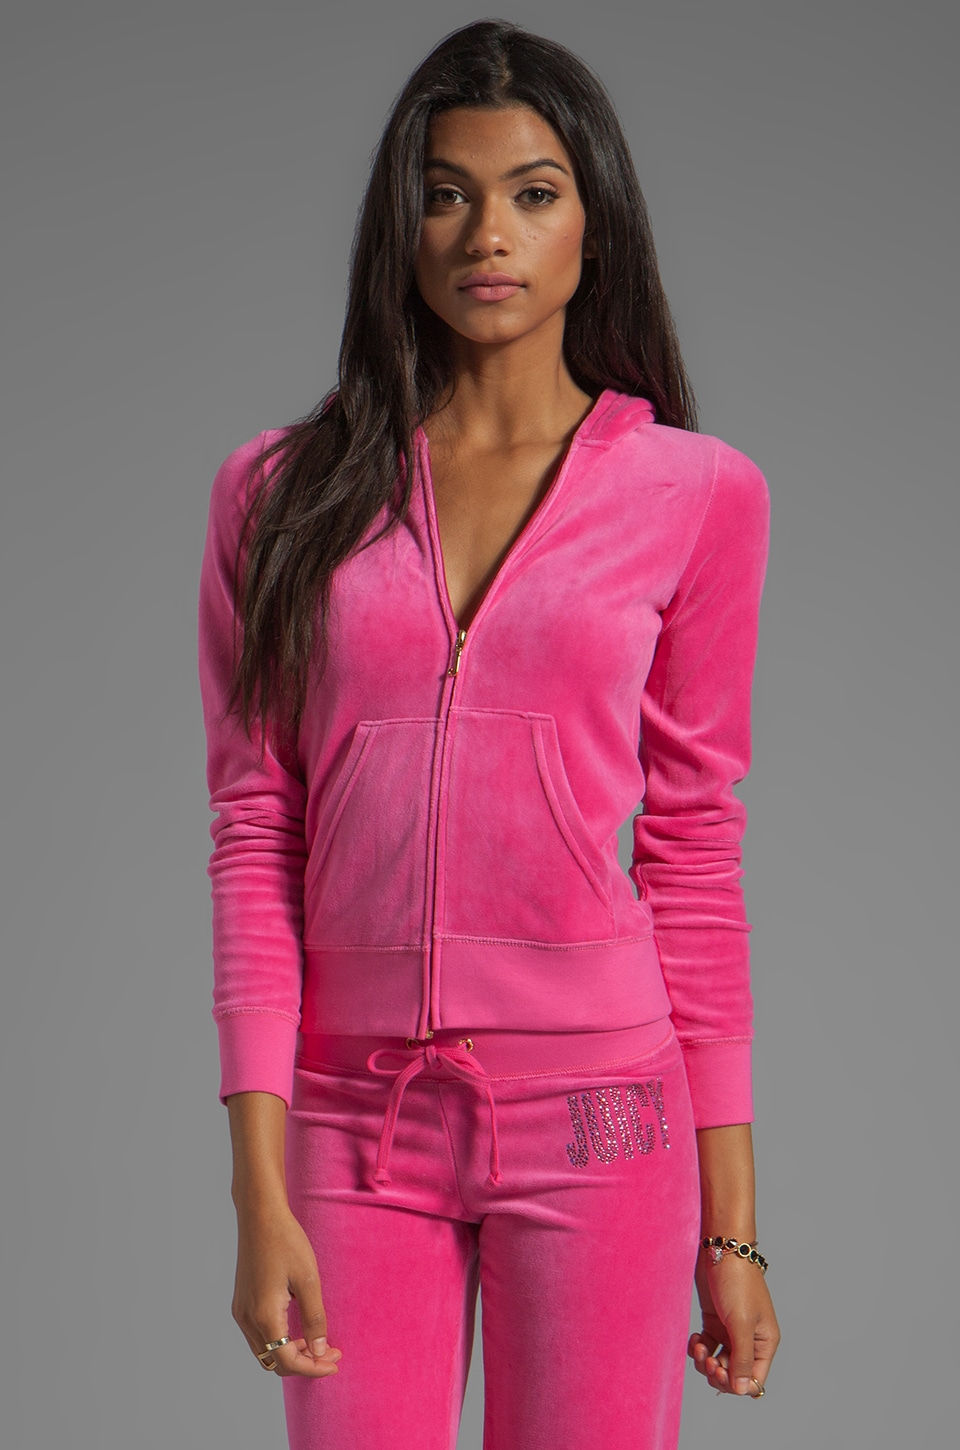 Juicy Couture Velour Choose Juicy Hoodie in Dragonfruit